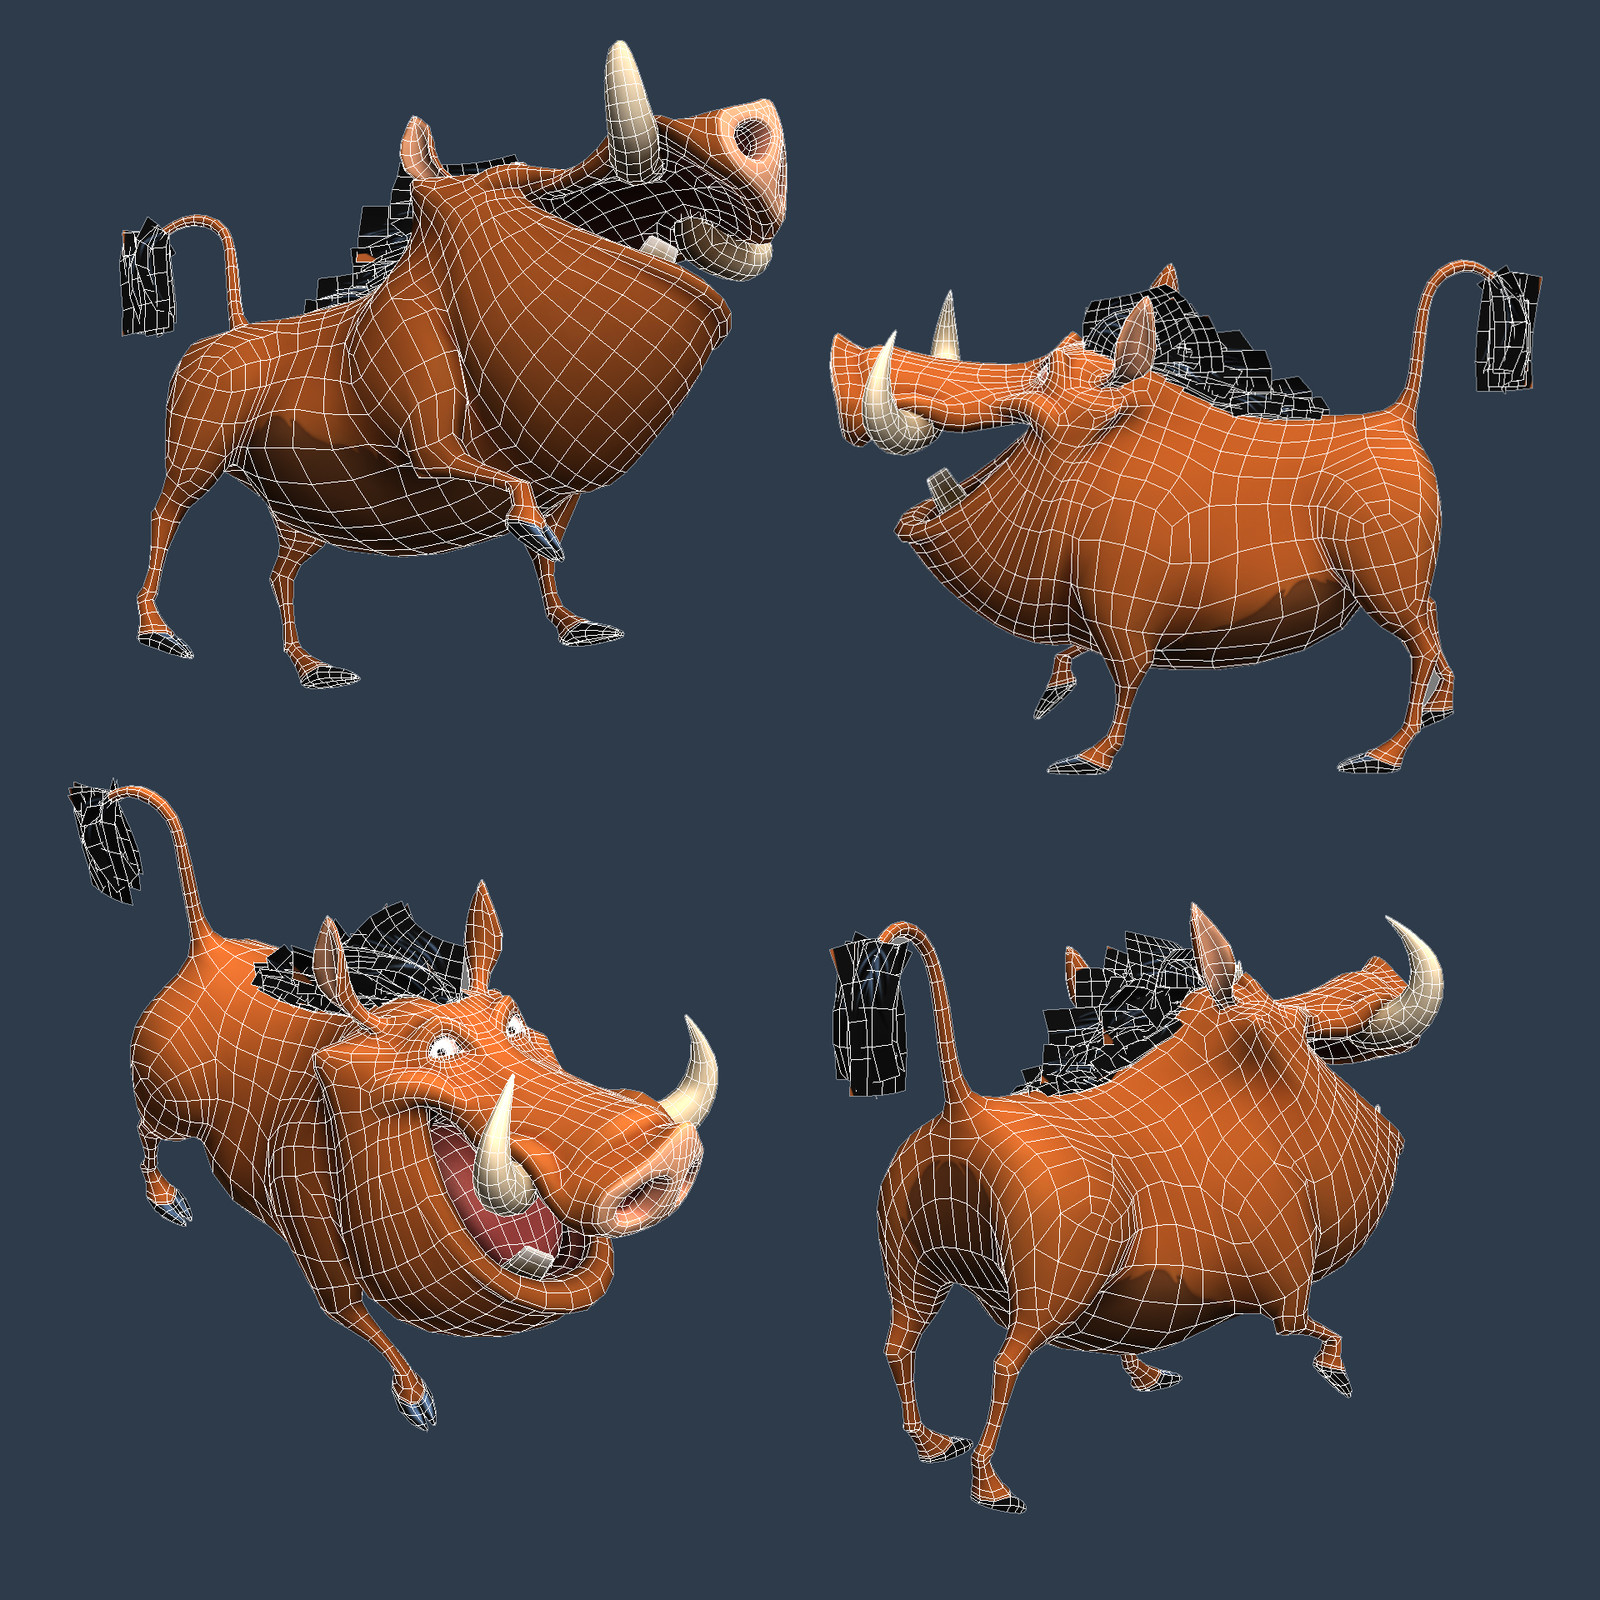 Wireframe - Lowpoly